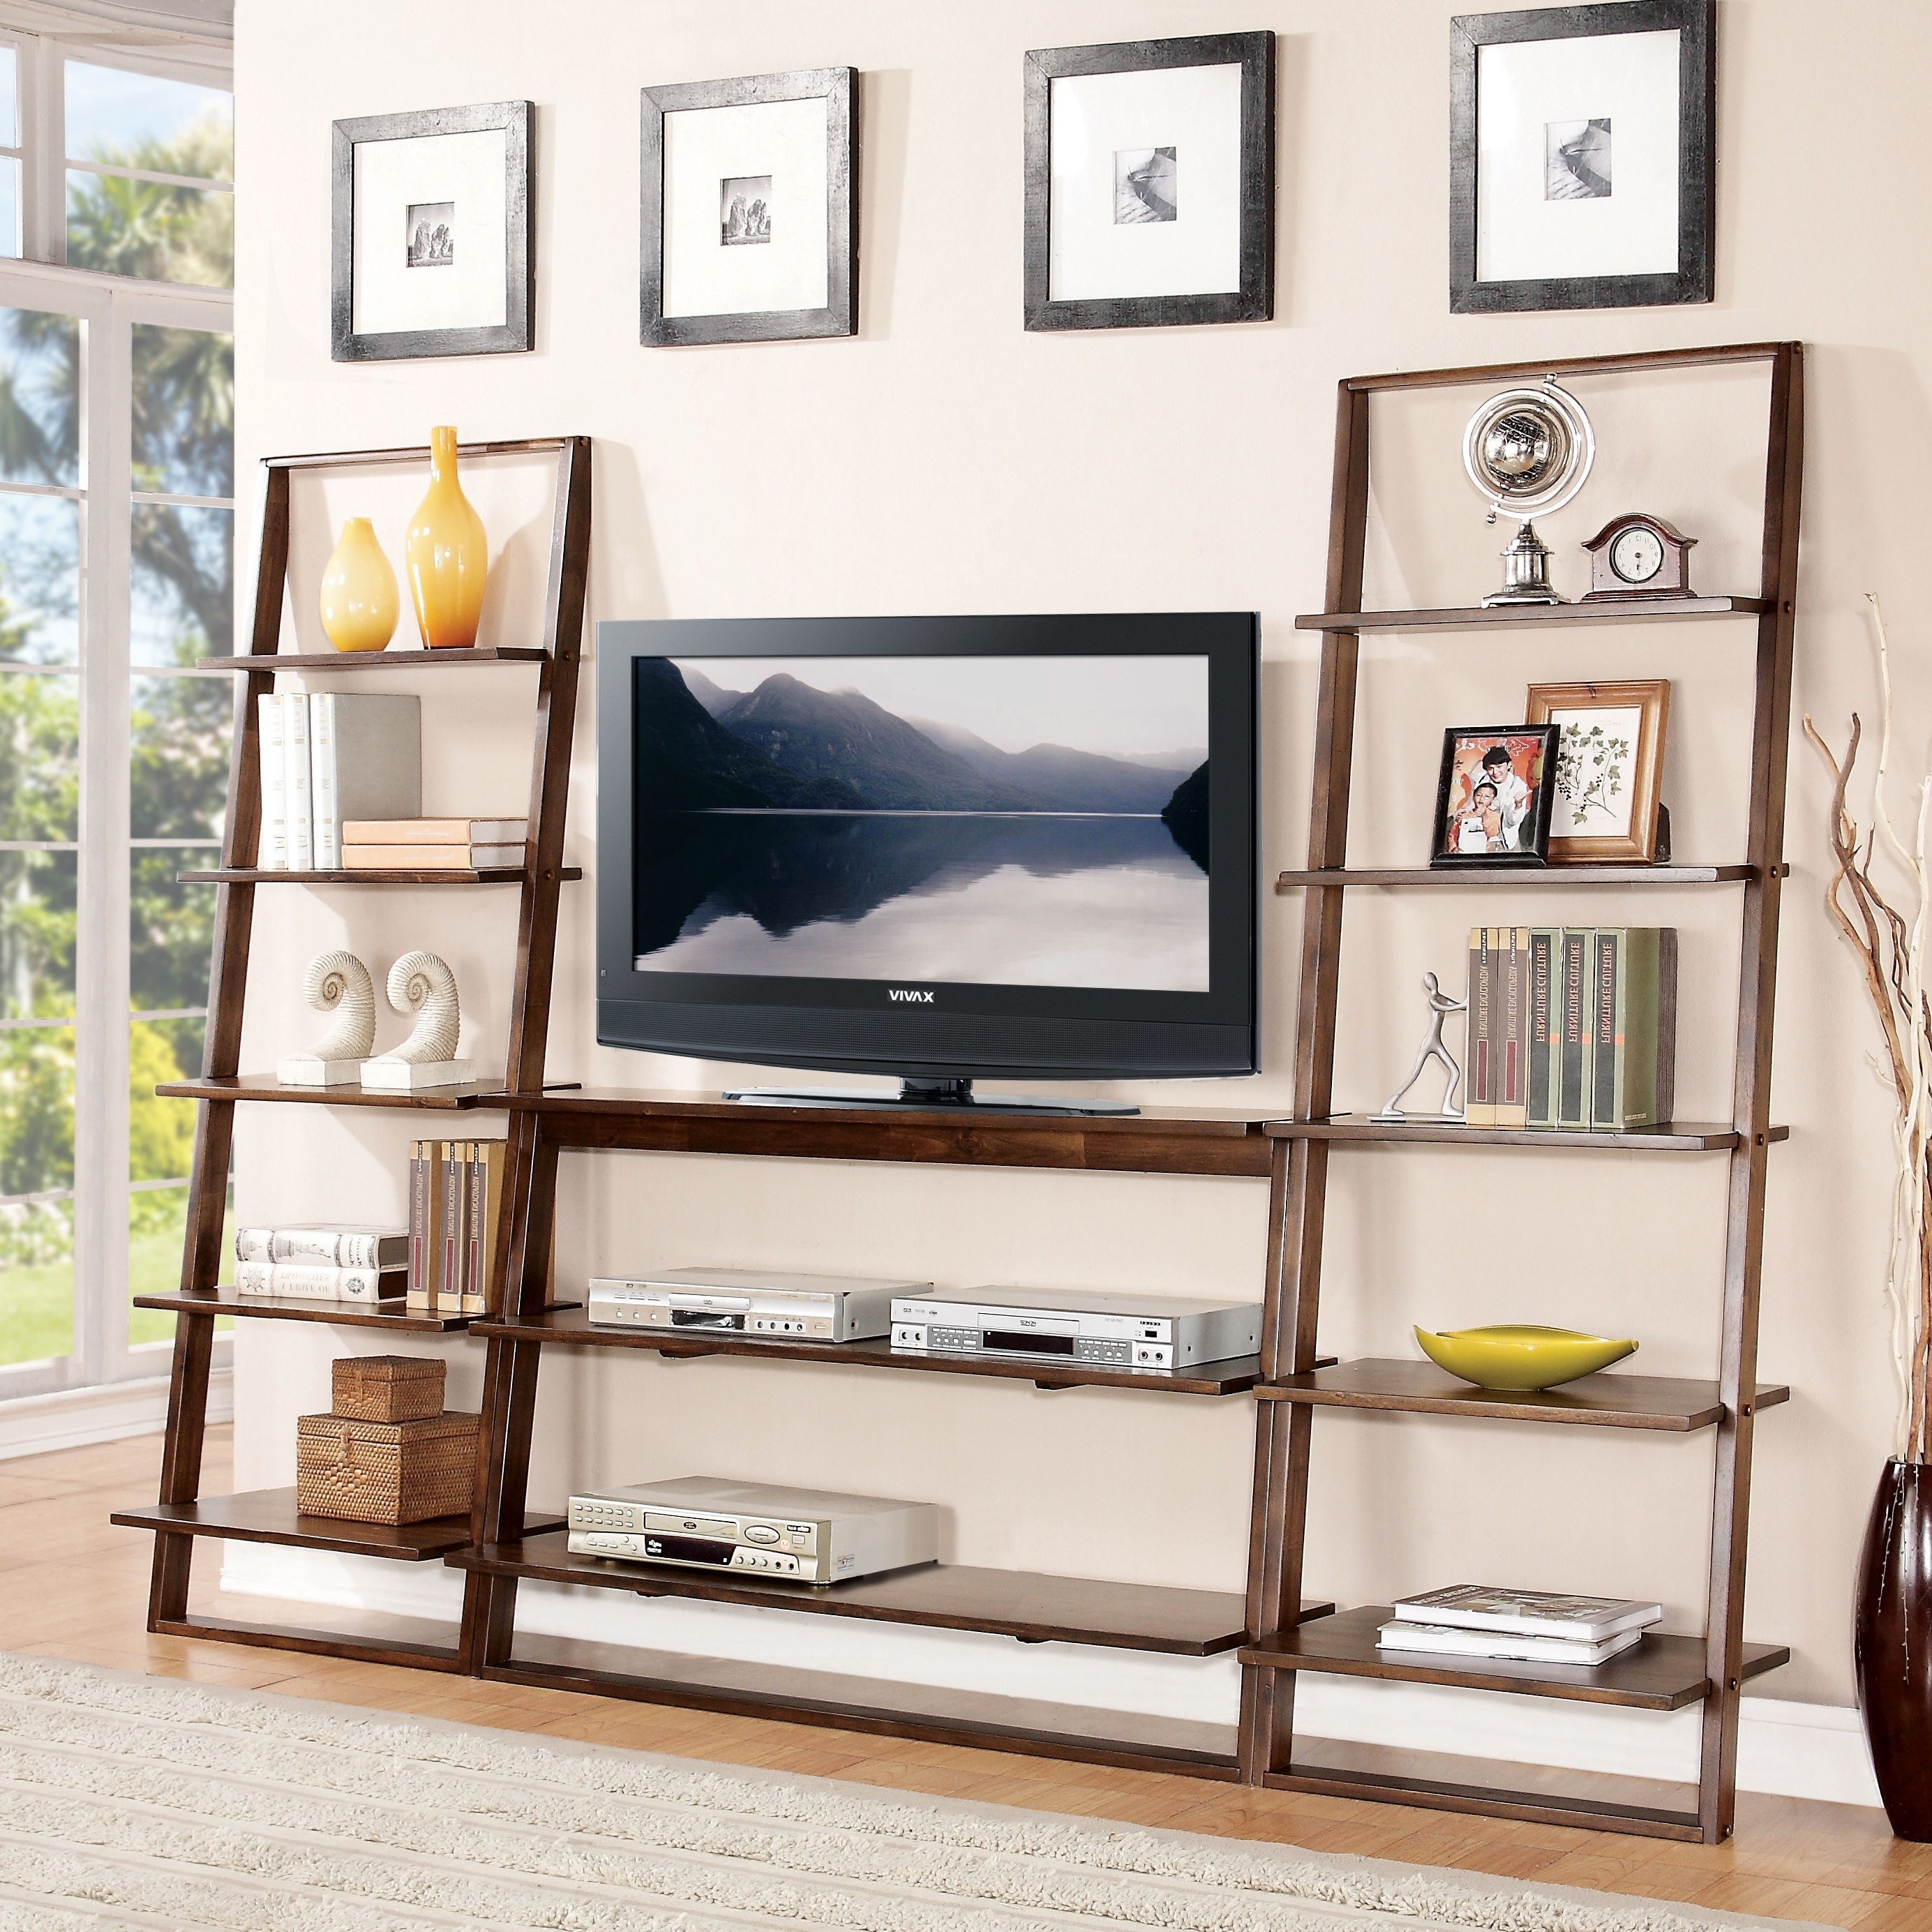 Famous Contemporary Leaning Bookcase Ideas: Minimalist Leaning Bookcase Regarding Bookcases With Tv Shelf (View 9 of 15)